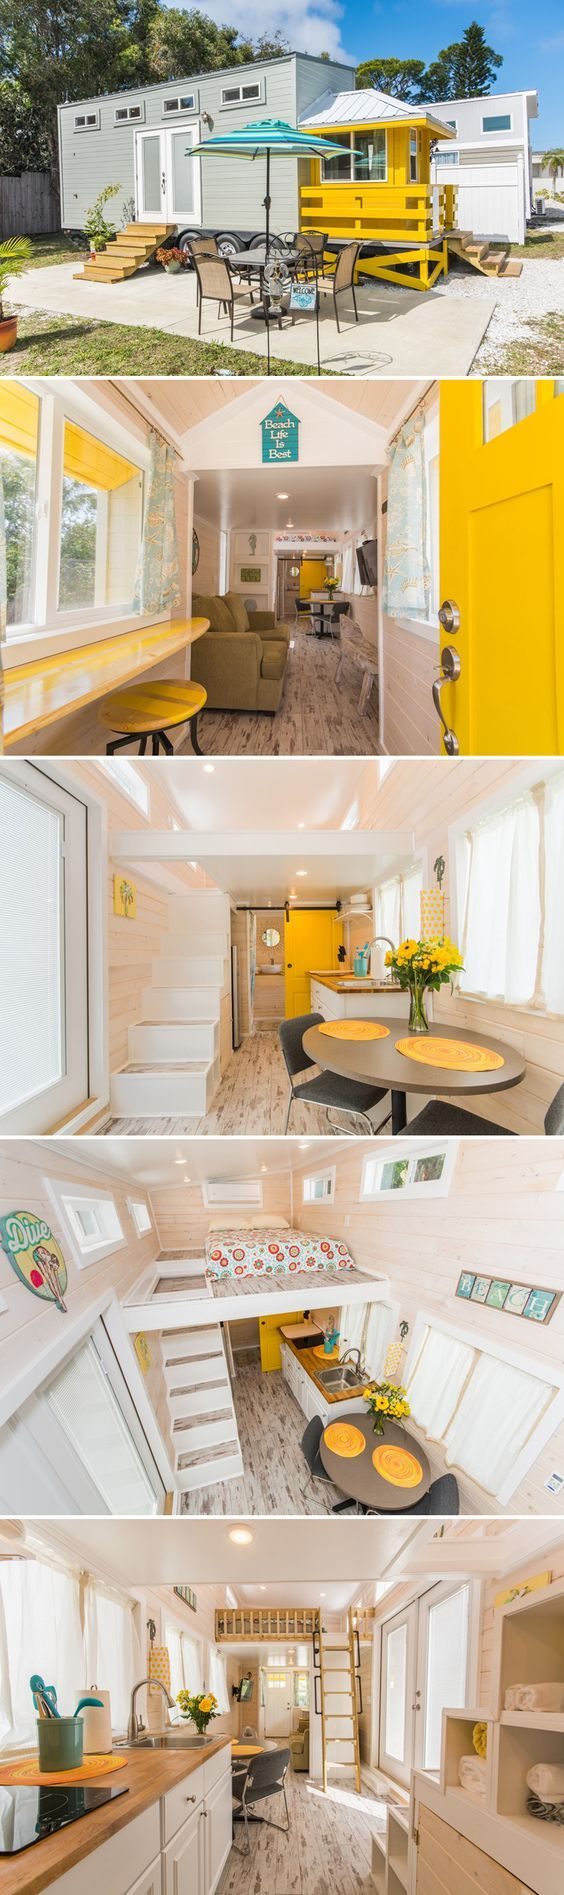 Best 25 Tiny House Rentals Ideas On Pinterest Mini